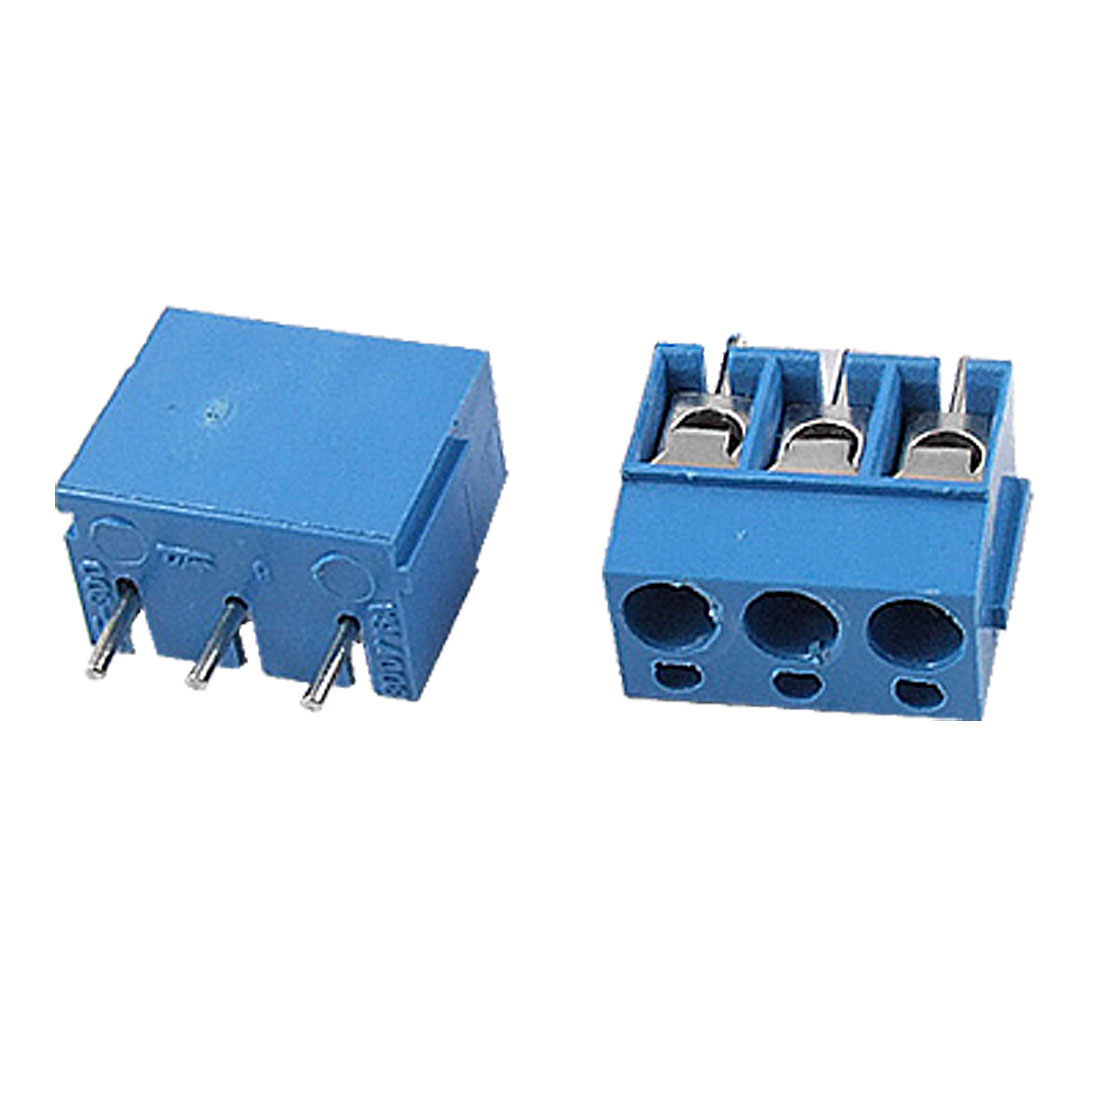 5 Pcs 3P 5mm Pitch Terminal Block PCB Connectors Blue